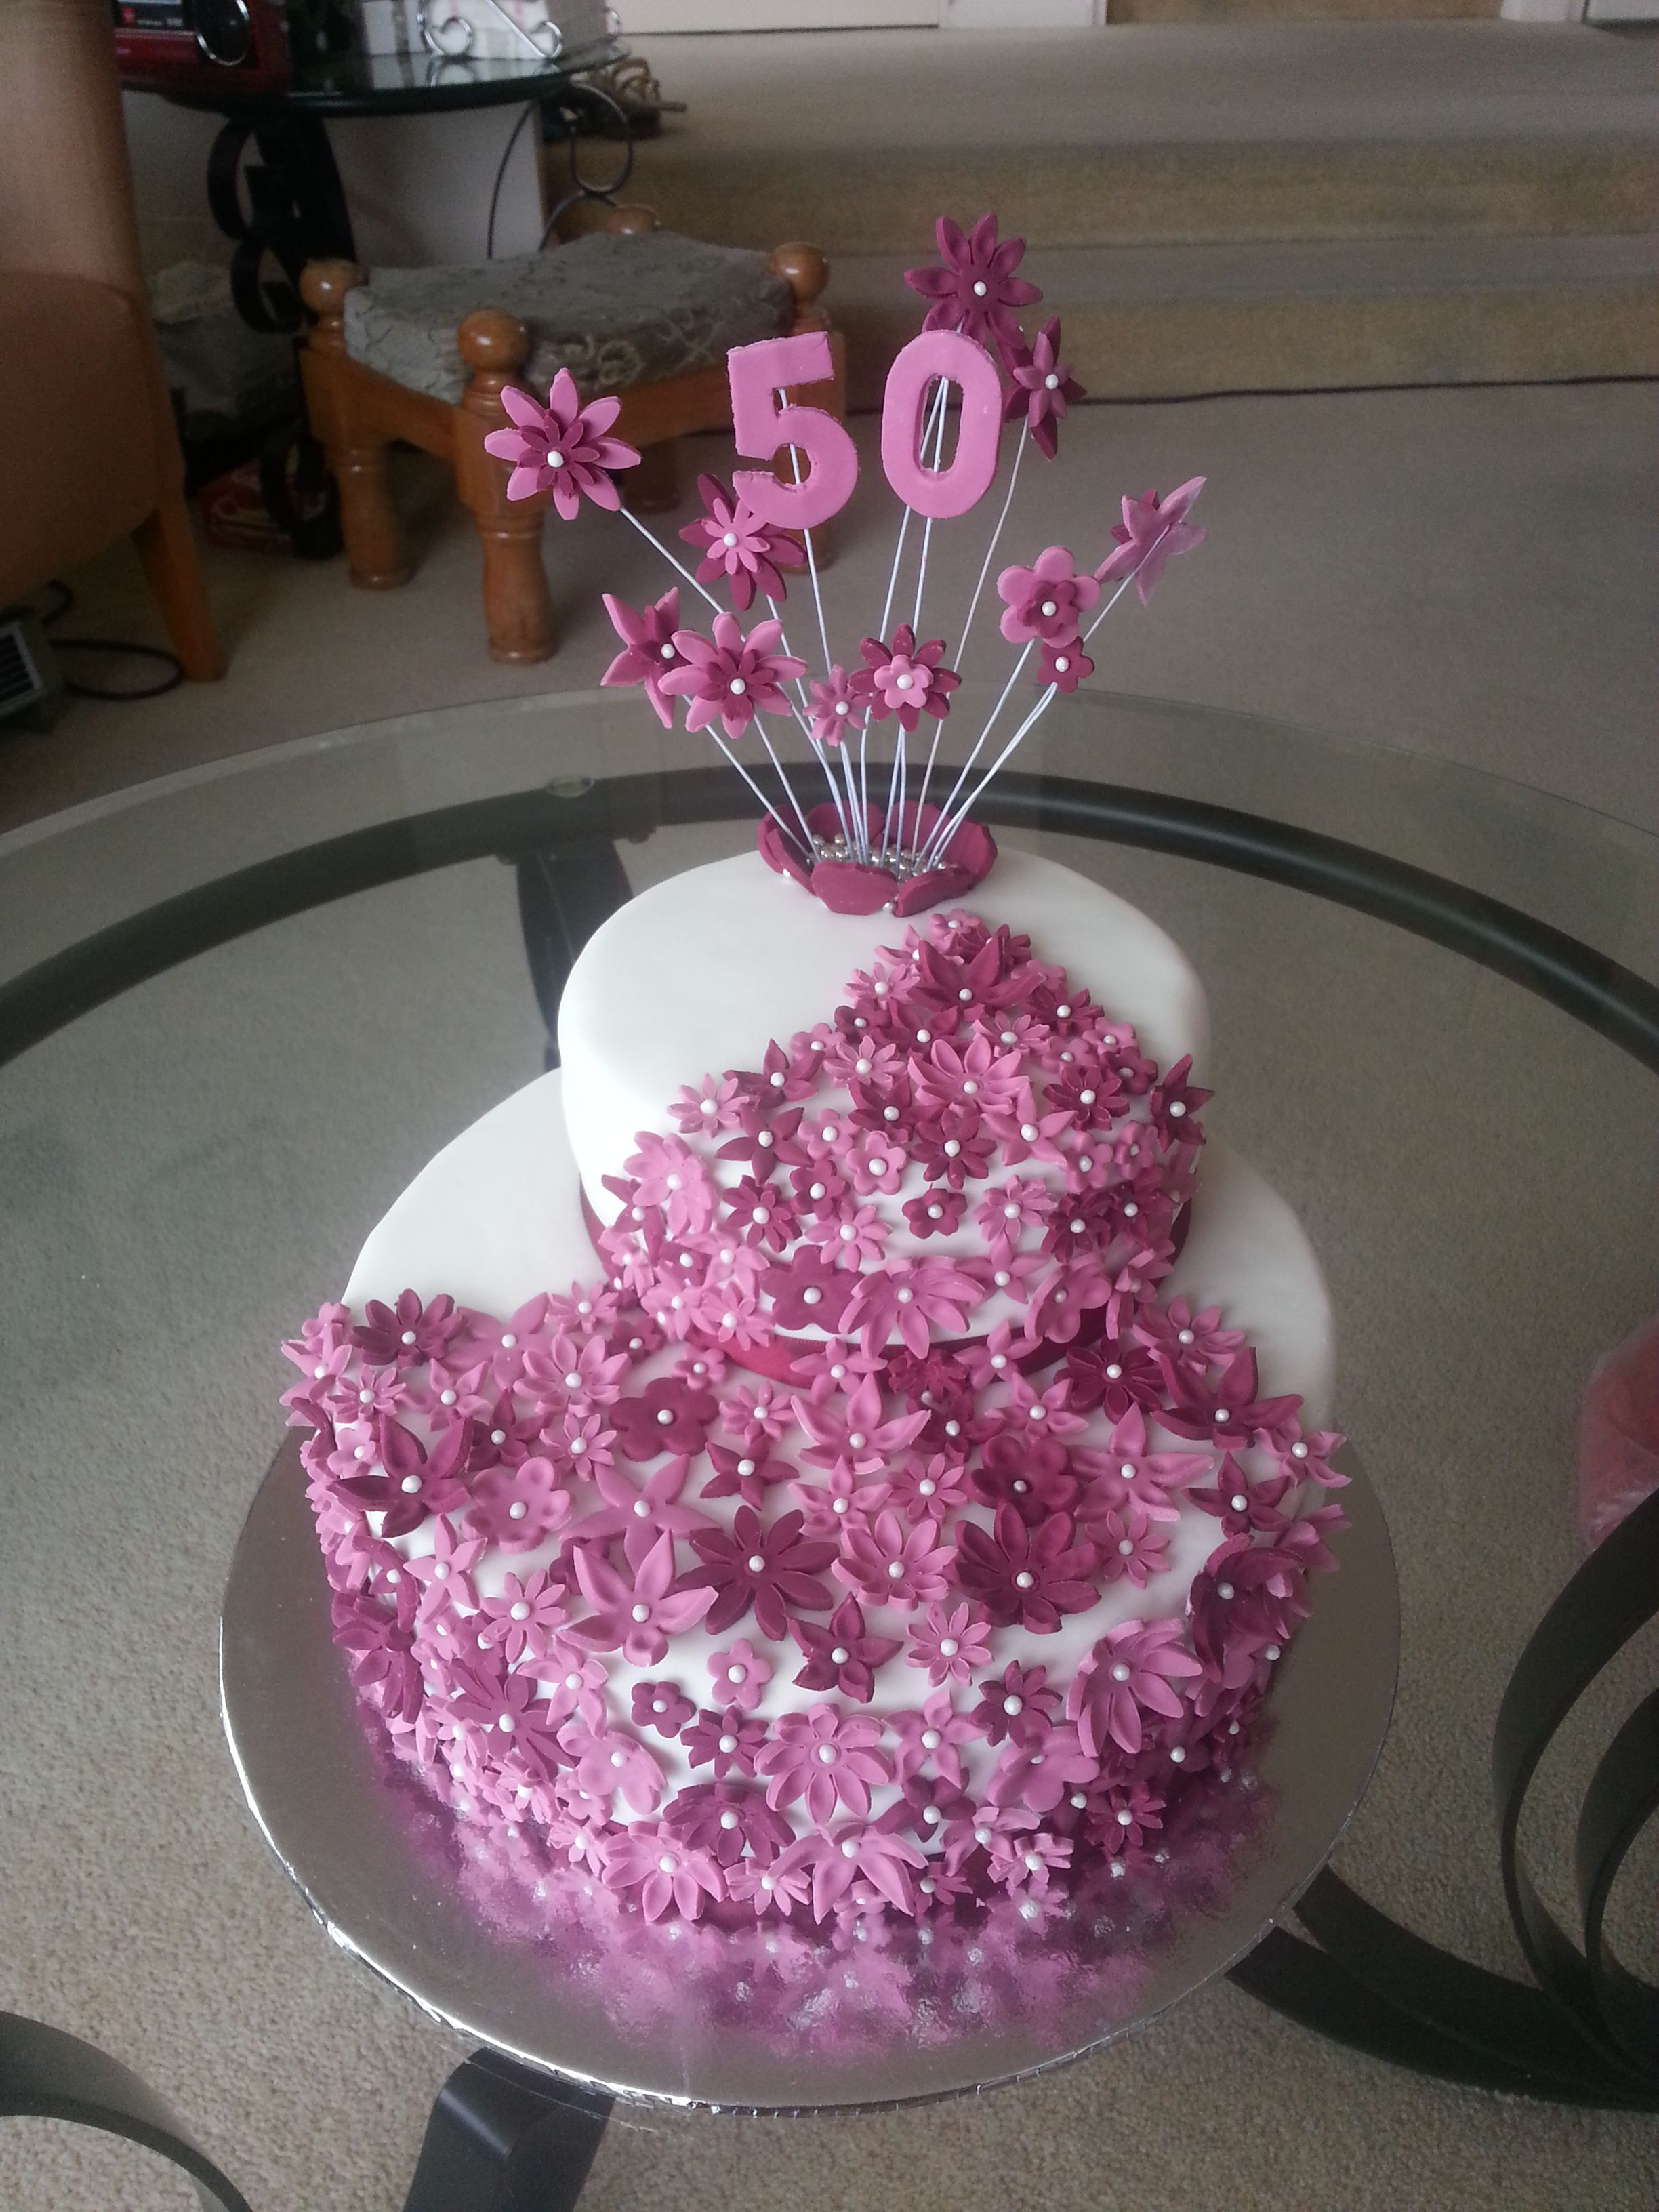 50th Birthday Cake Purple Flowers Homemade Cakes Pinterest